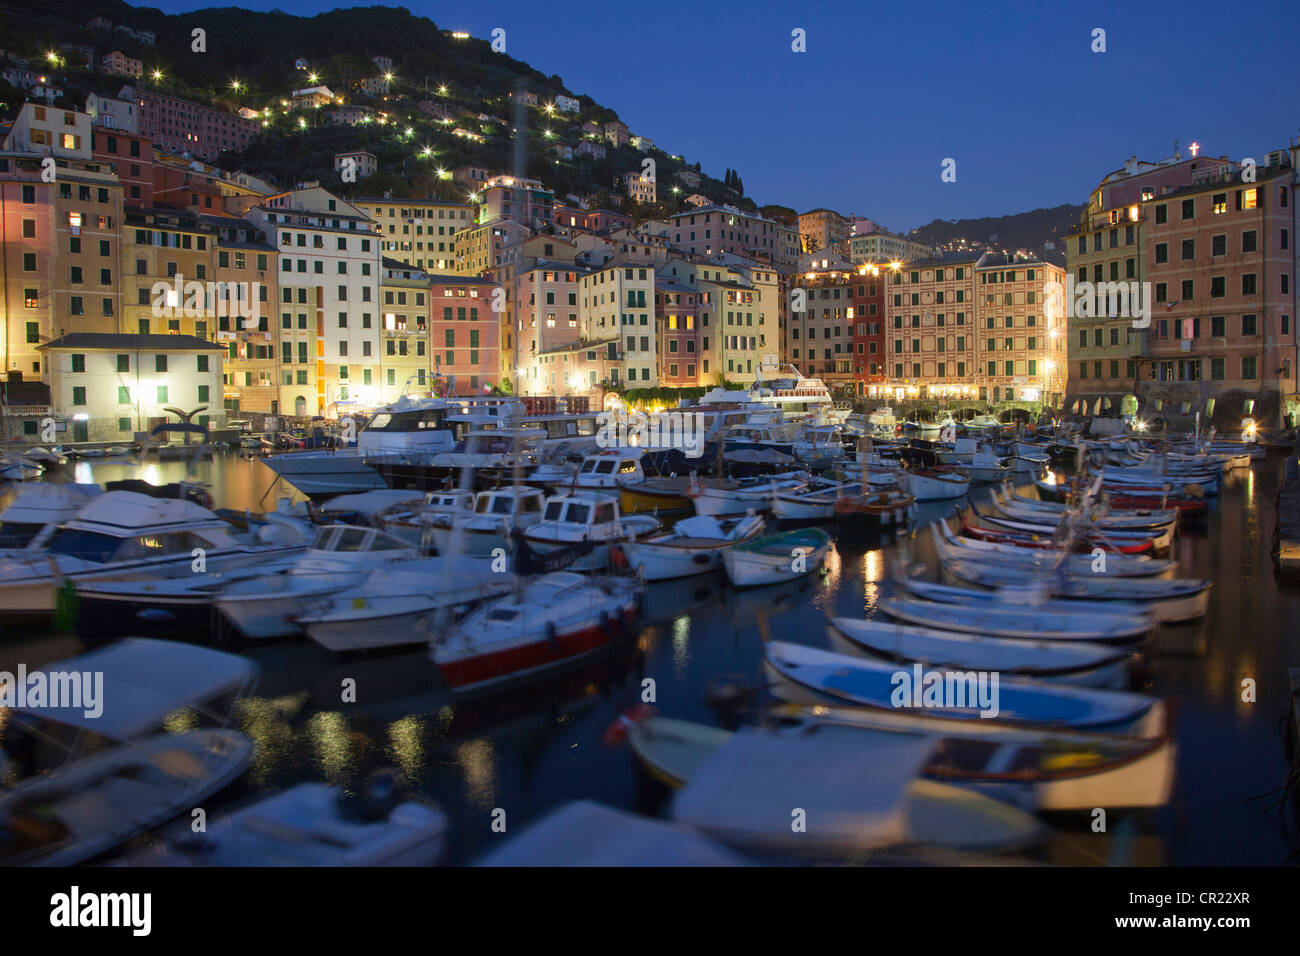 Boats docked in urban pier - Stock Image